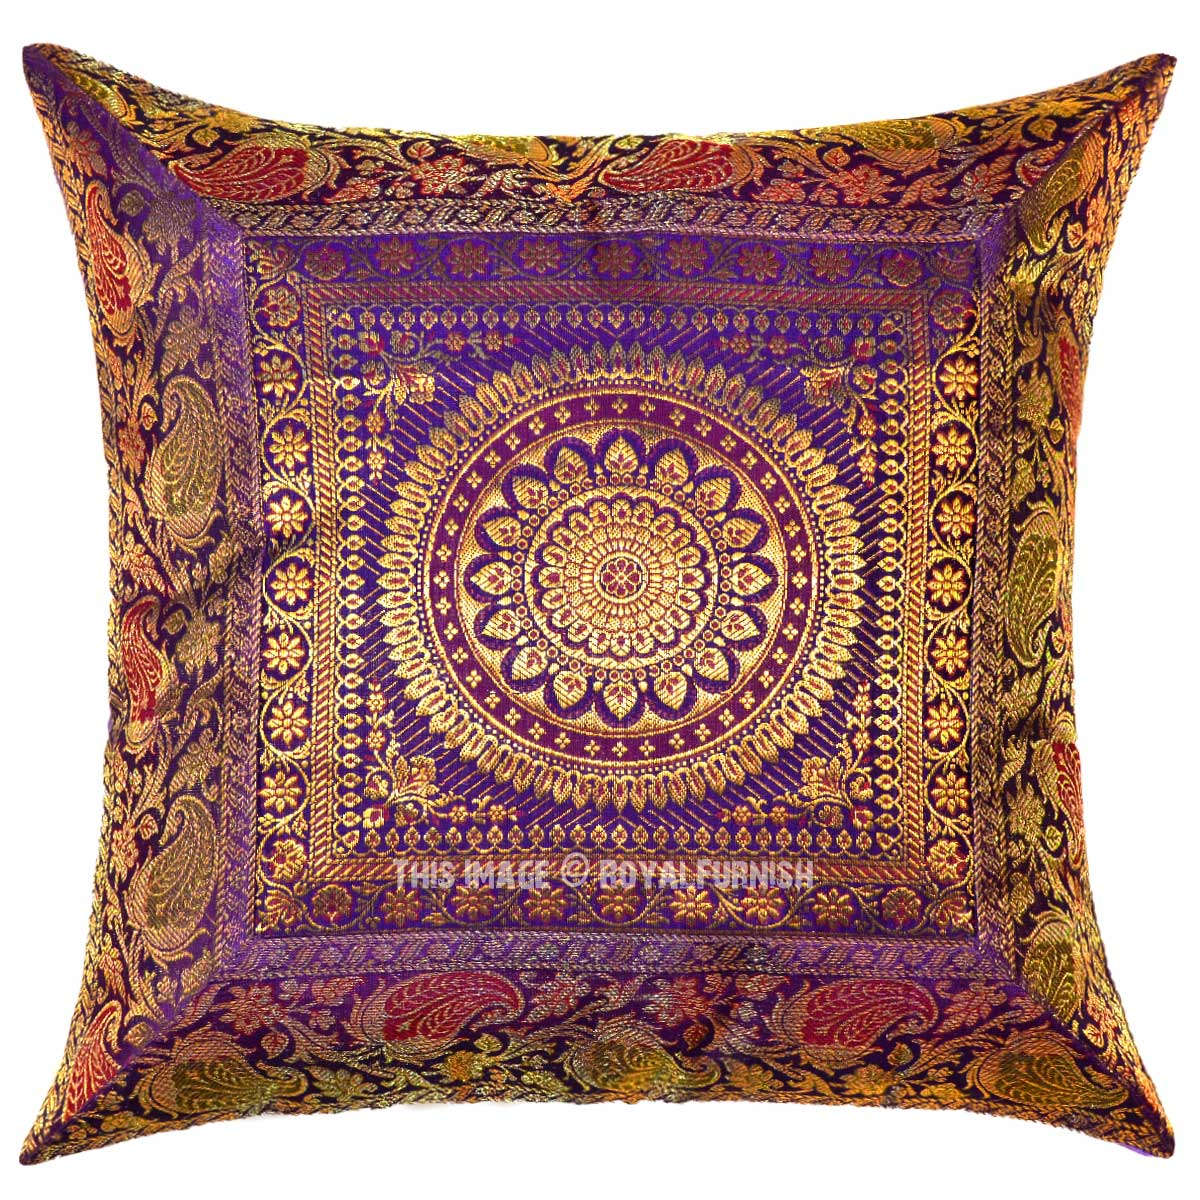 16x16 Decorative Pillow Covers : Purple Medallion Circle Decorative Outdoor Indoor Silk Square Throw Pillow Cover 16X16 Inch ...